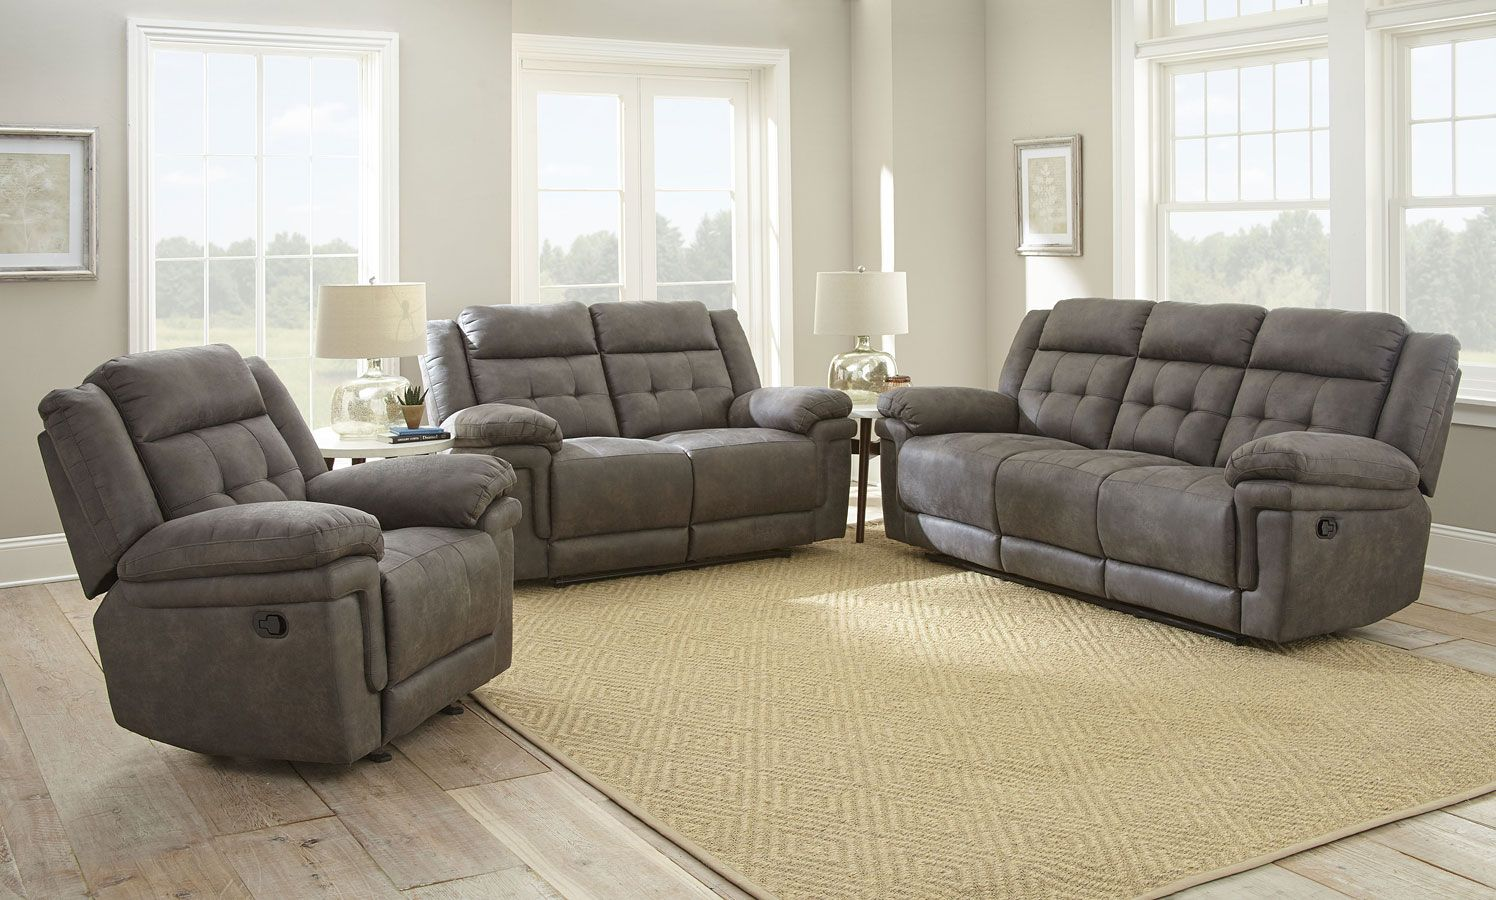 Anastasia Reclining Living Room Set Gray Living Room Recliner Living Room Sets Living Room Sets Furniture